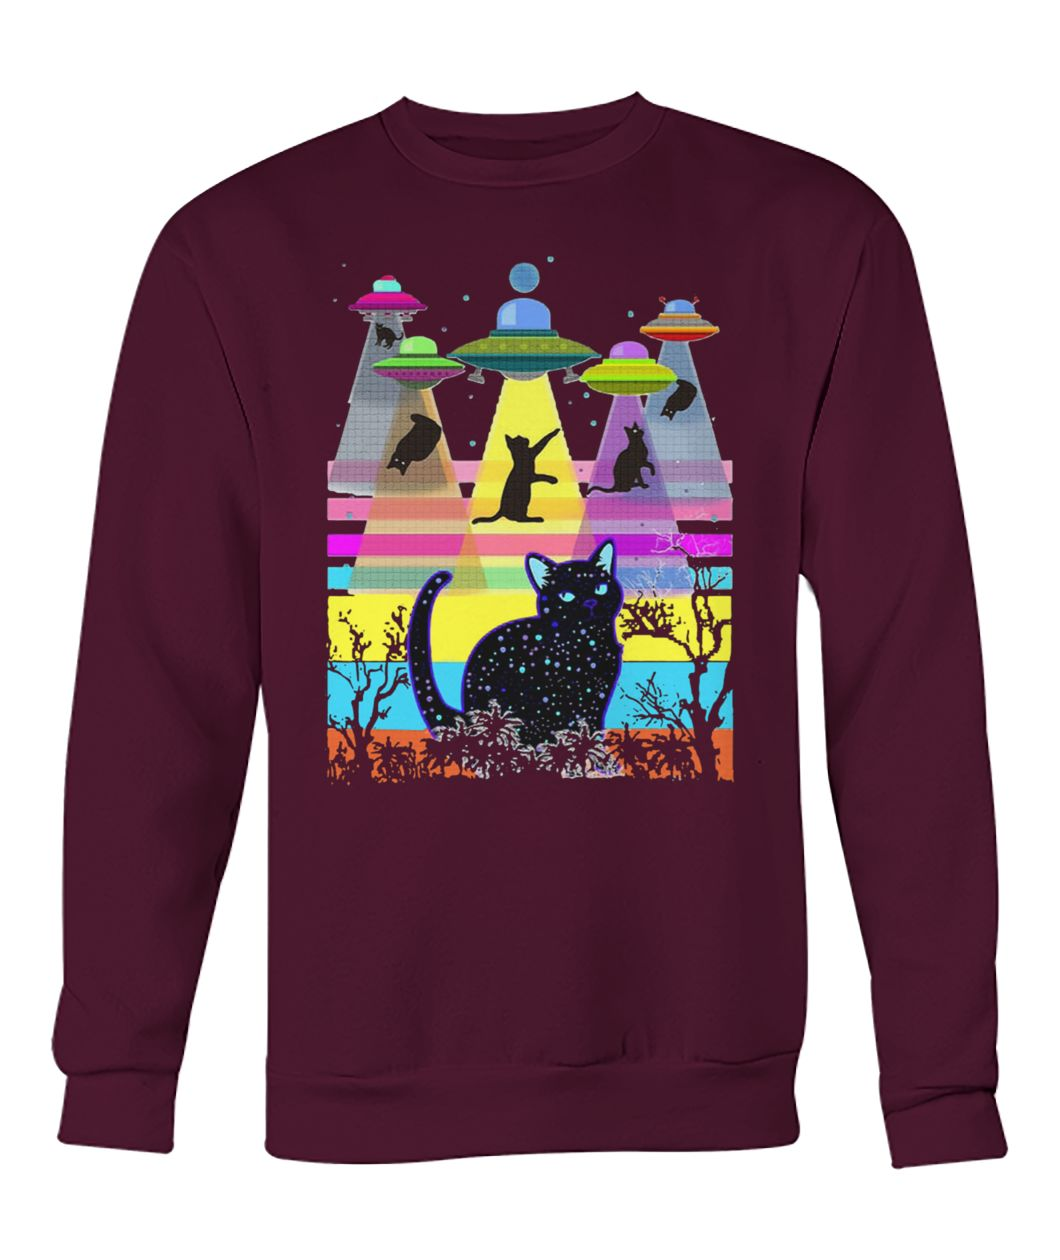 Storm area 51 they can't stop all of us cats crew neck sweatshirt